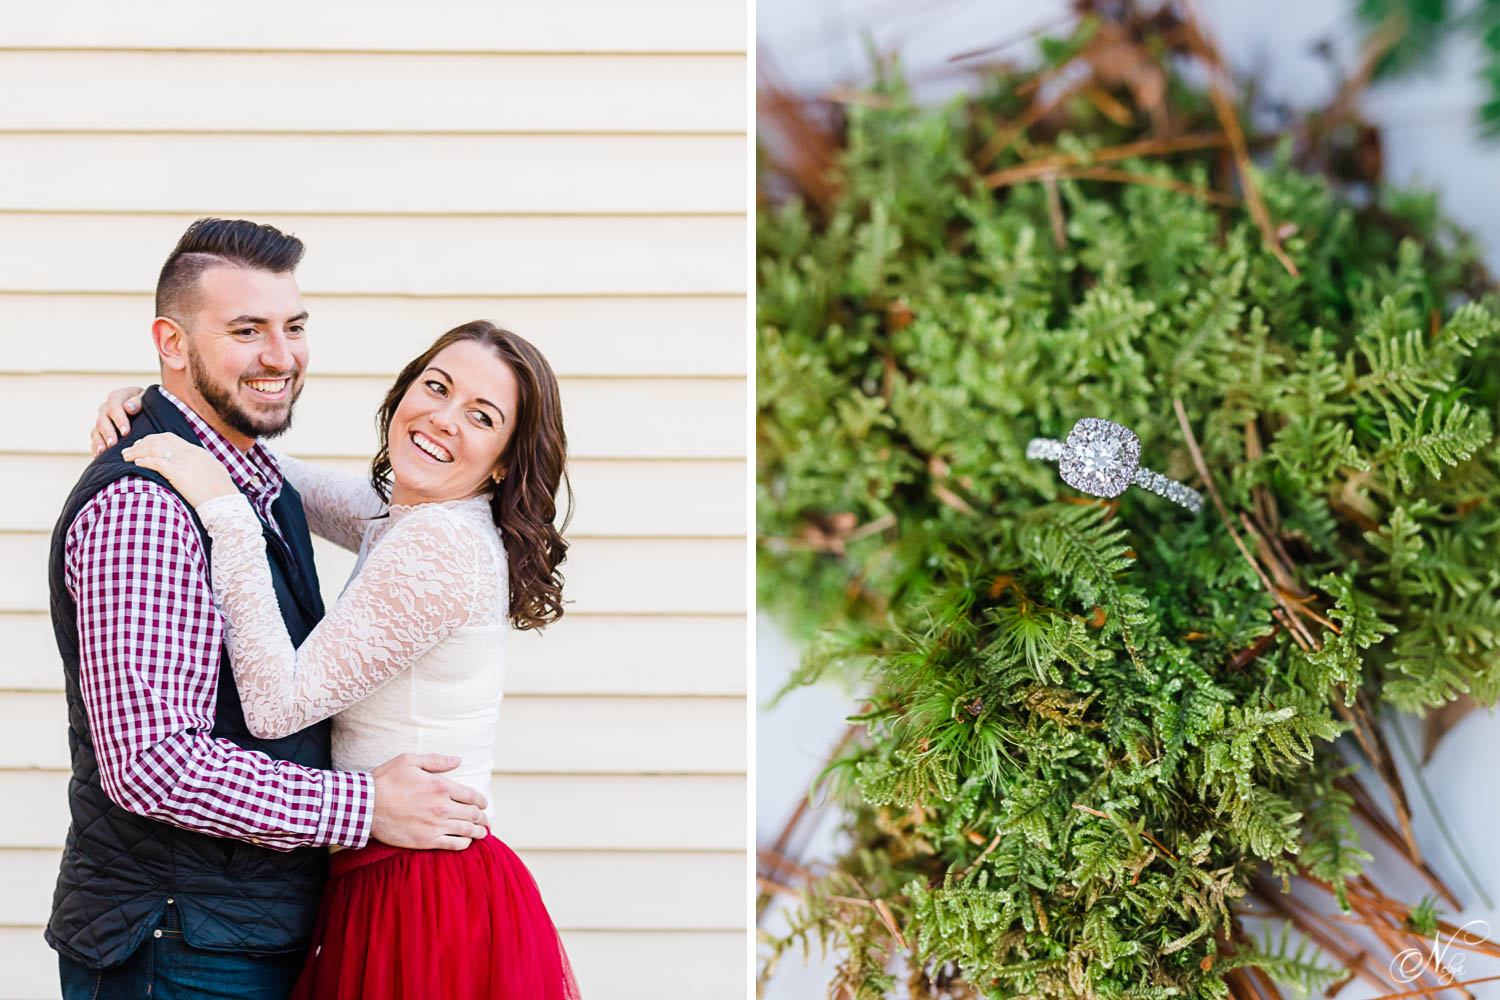 girl in white lace shirt laughing over her shoulder with her fiance hugging her. And close up photo of an engagement ring on bright green moss.